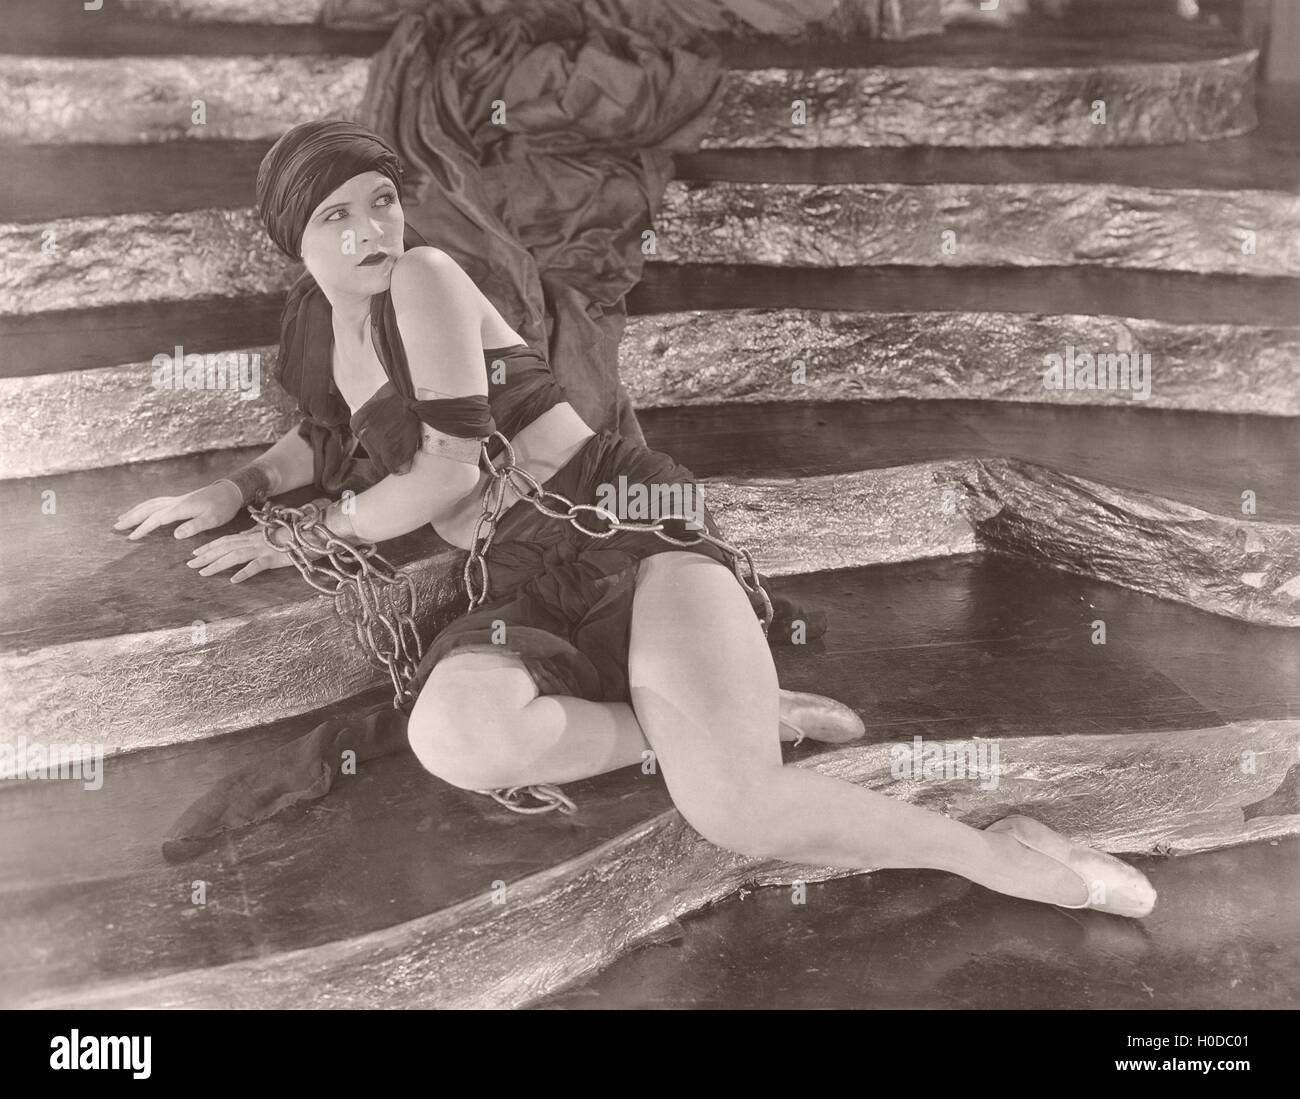 Woman in chains - Stock Image